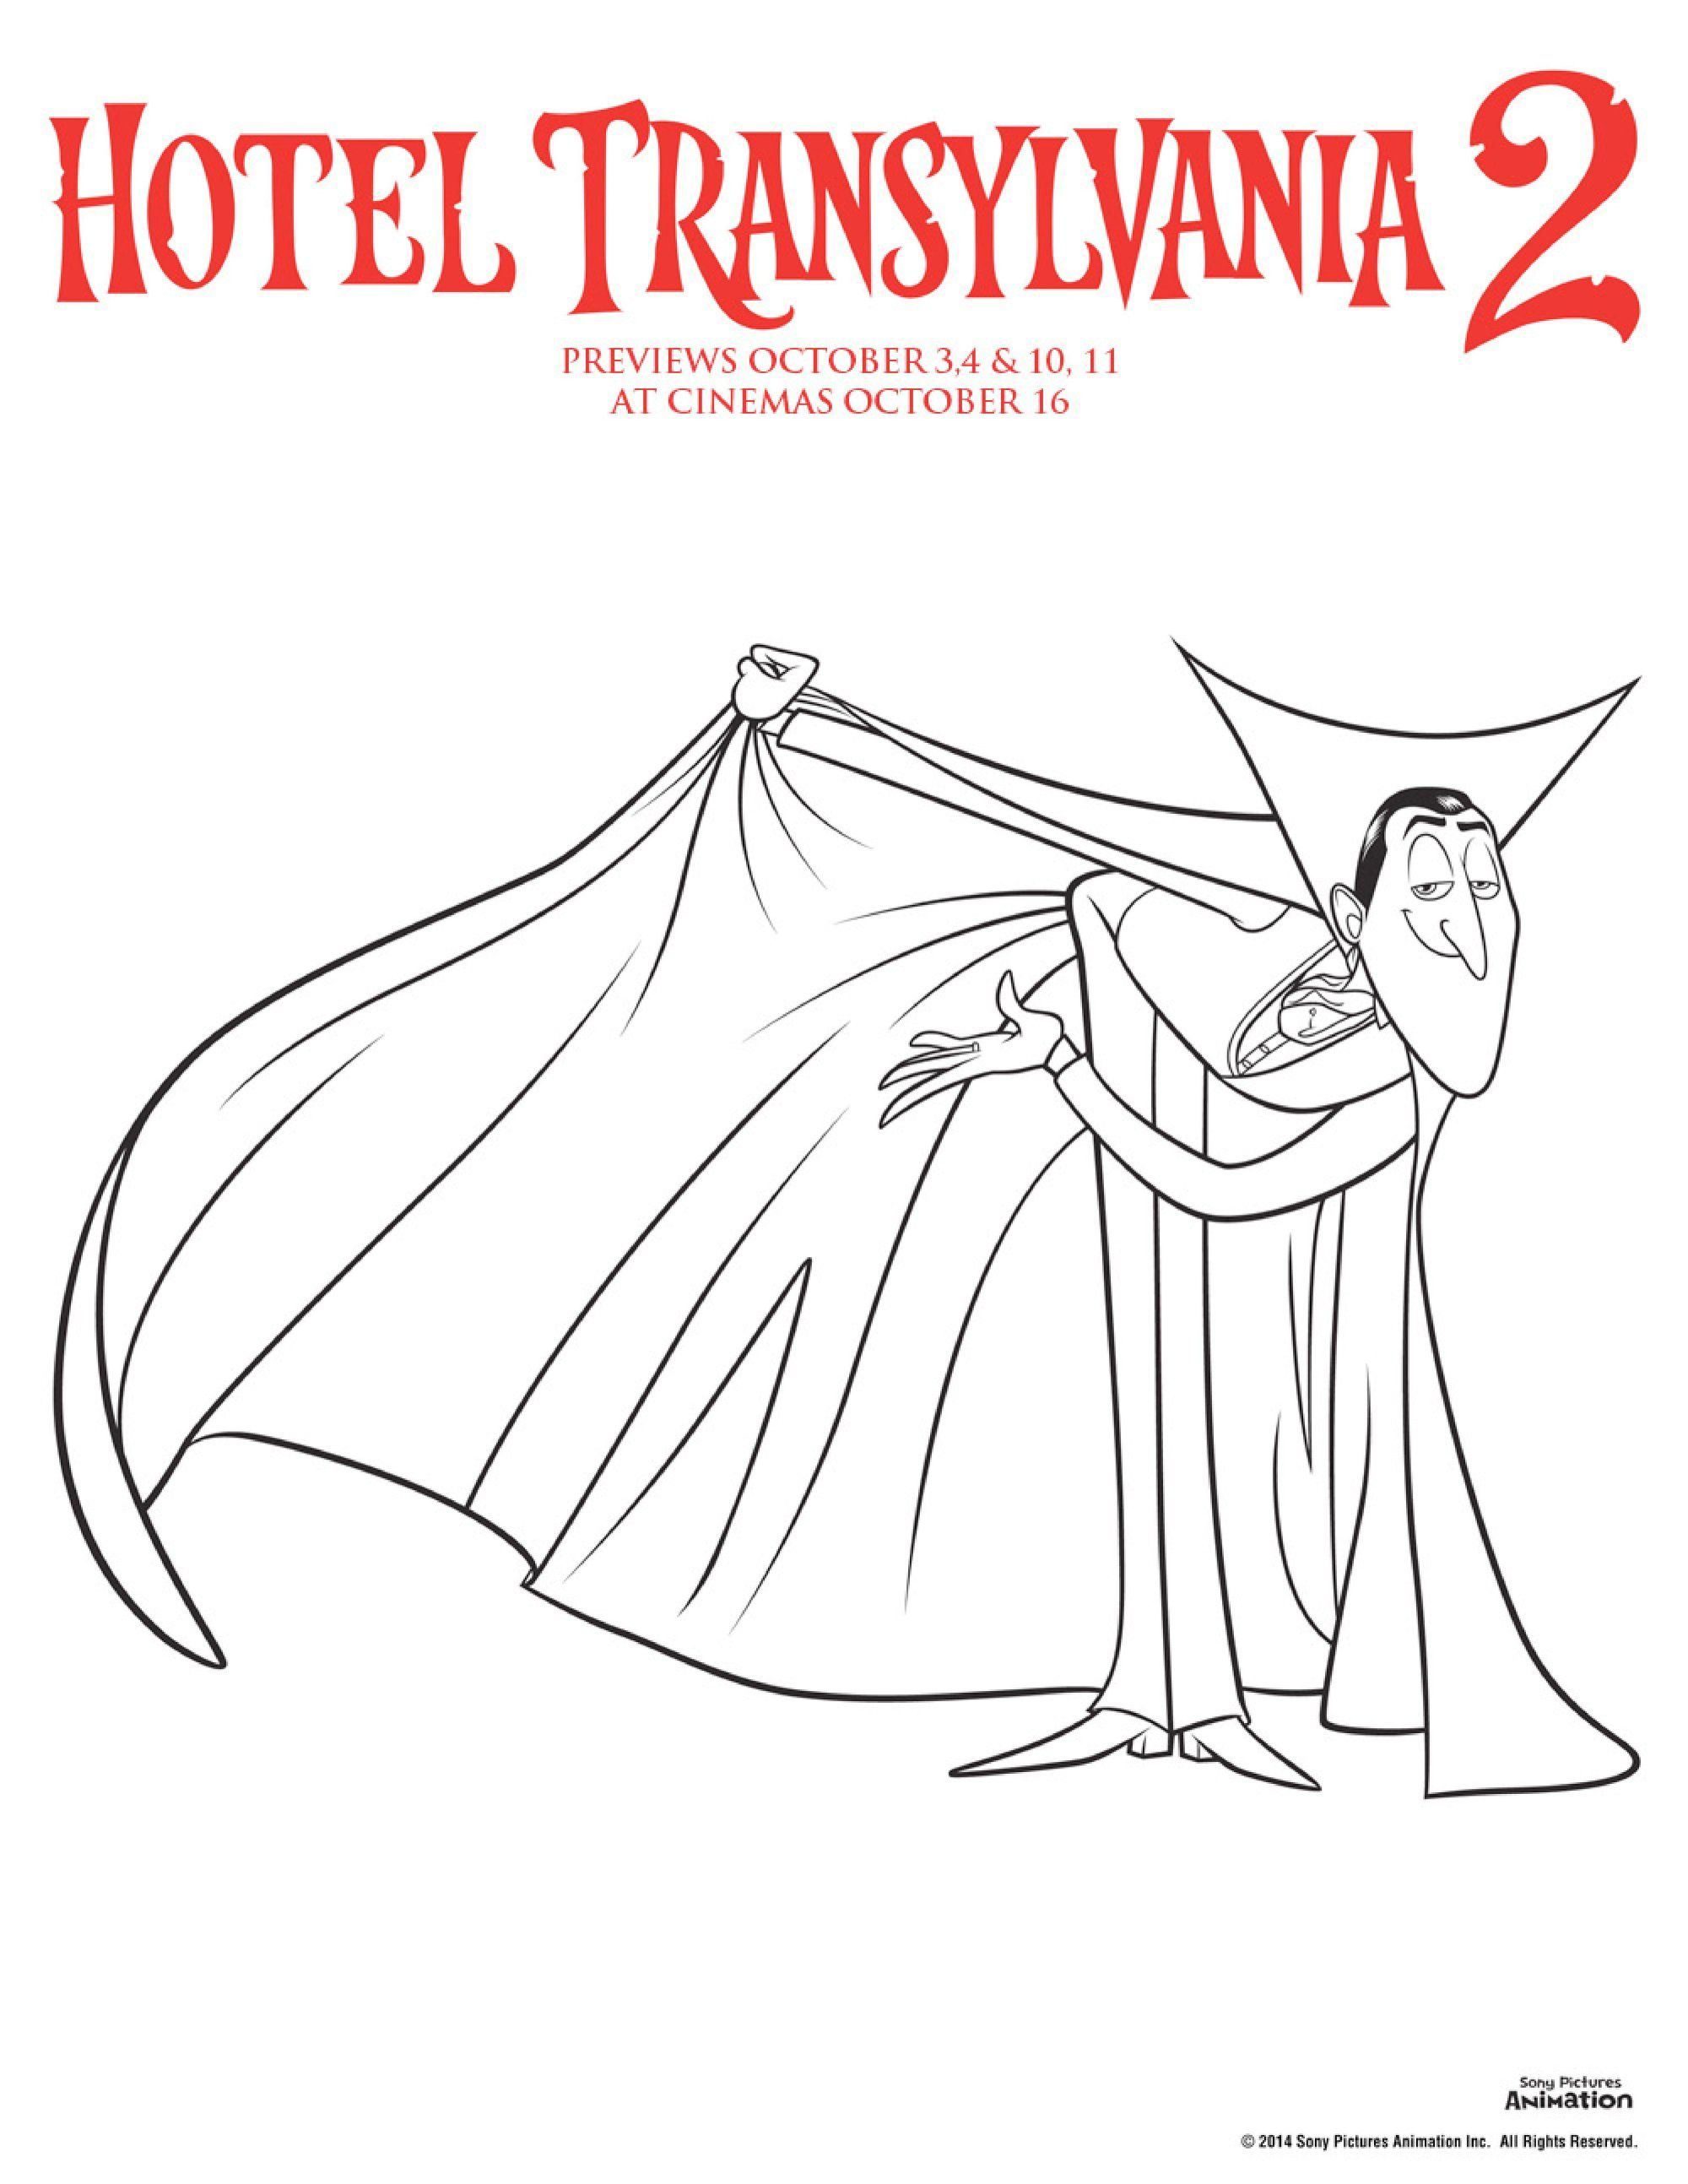 Hotel Transylvania 2 Colouring Pages Count Dracula Vampire Colouring Sheet Perfect For Hall Hotel Transylvania Hotel Transylvania 2 Dracula Hotel Transylvania